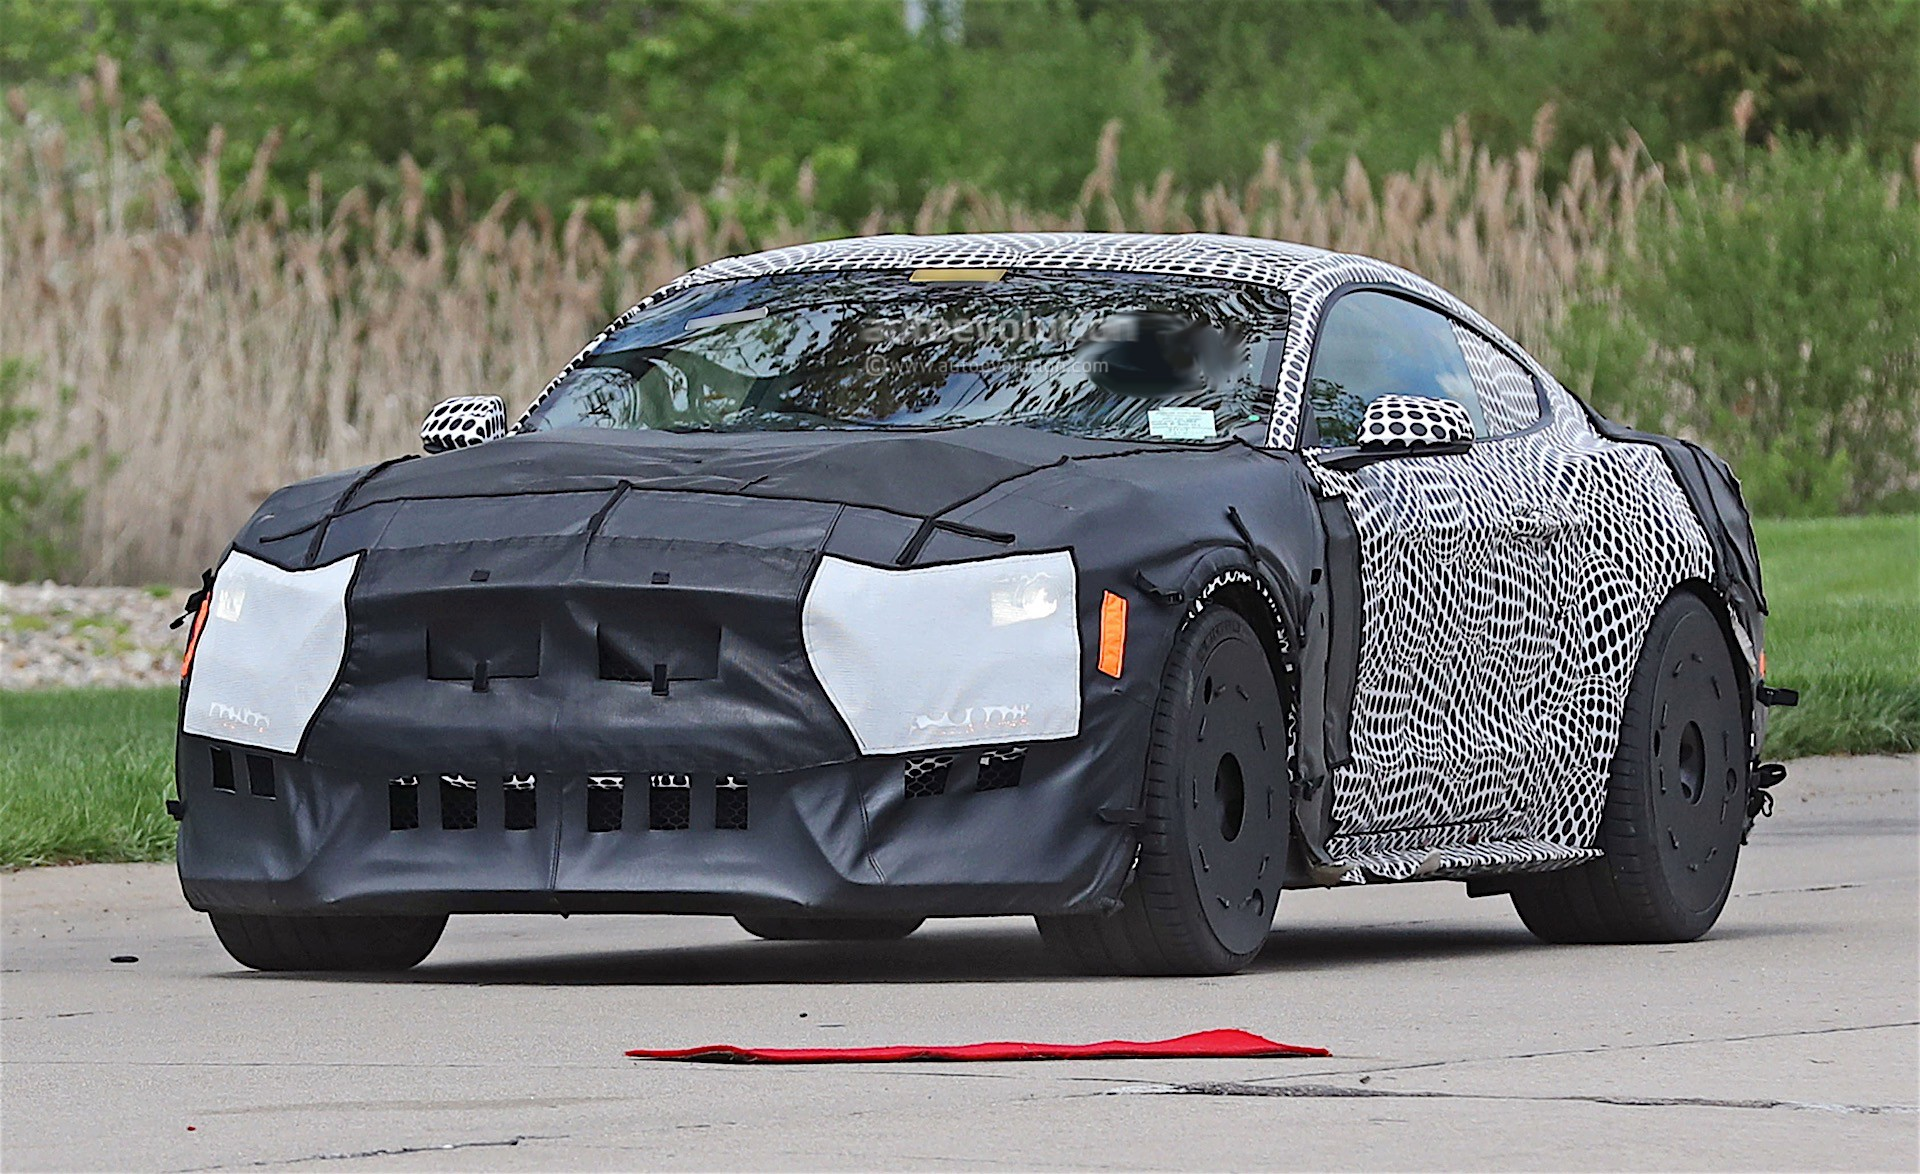 2019 shelby gt500 mustang spy video suggests fpc v8 automatic transmission autoevolution. Black Bedroom Furniture Sets. Home Design Ideas